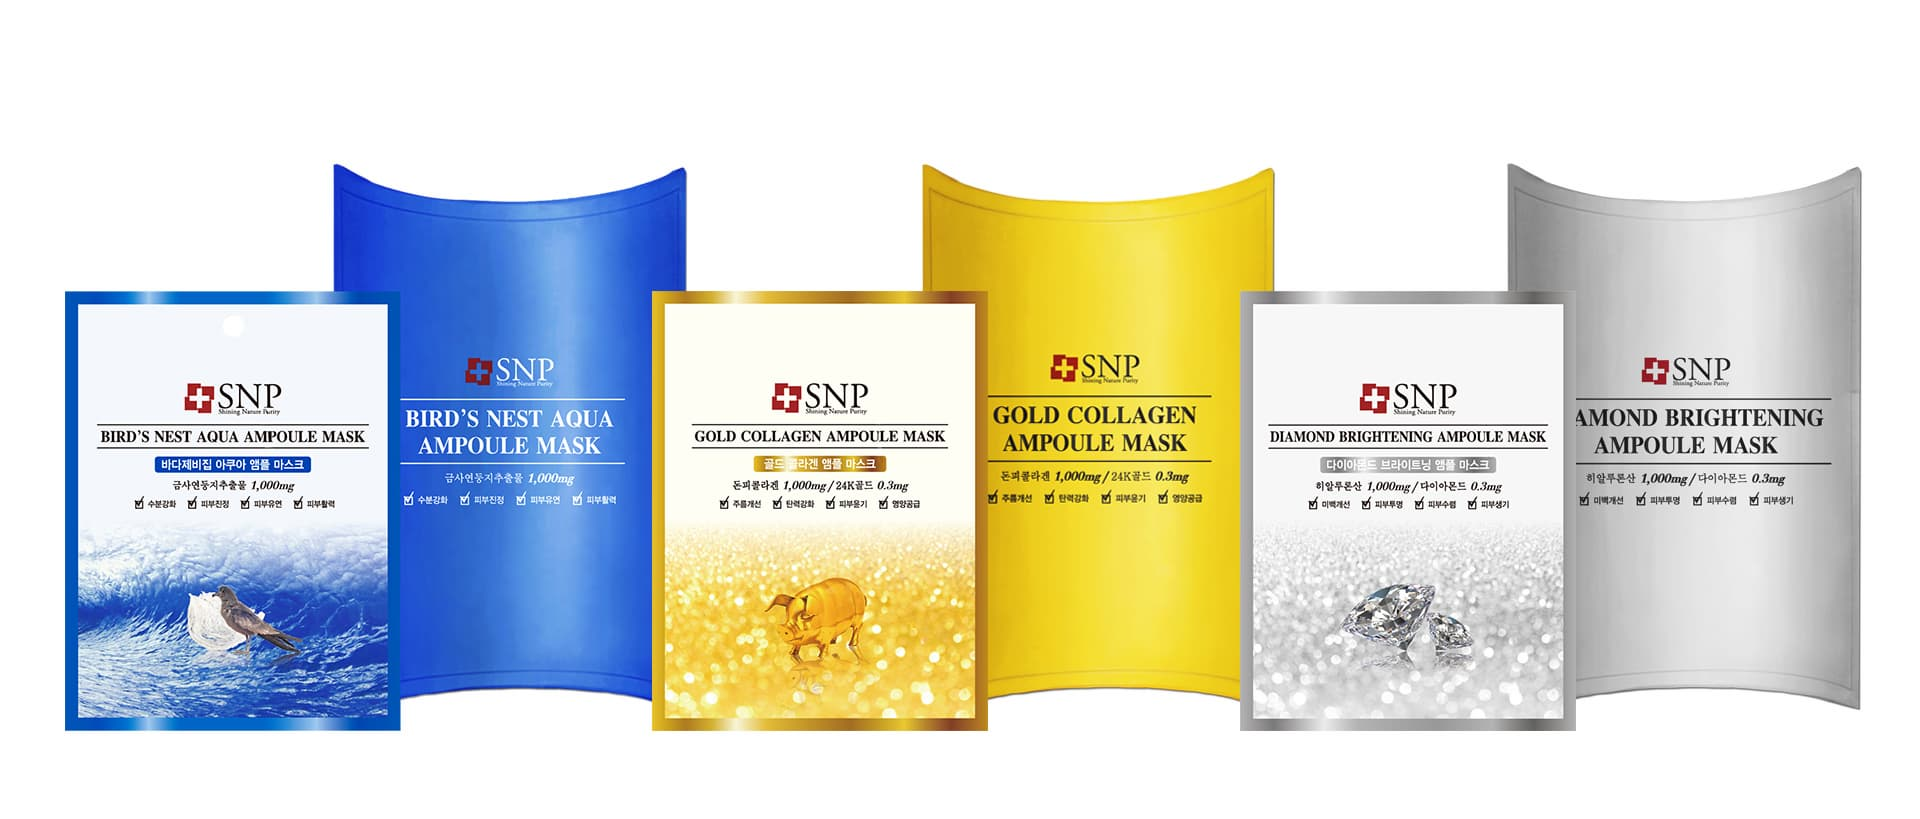 85_SNP Bird-s Nest AQUA AMPOULE MASK